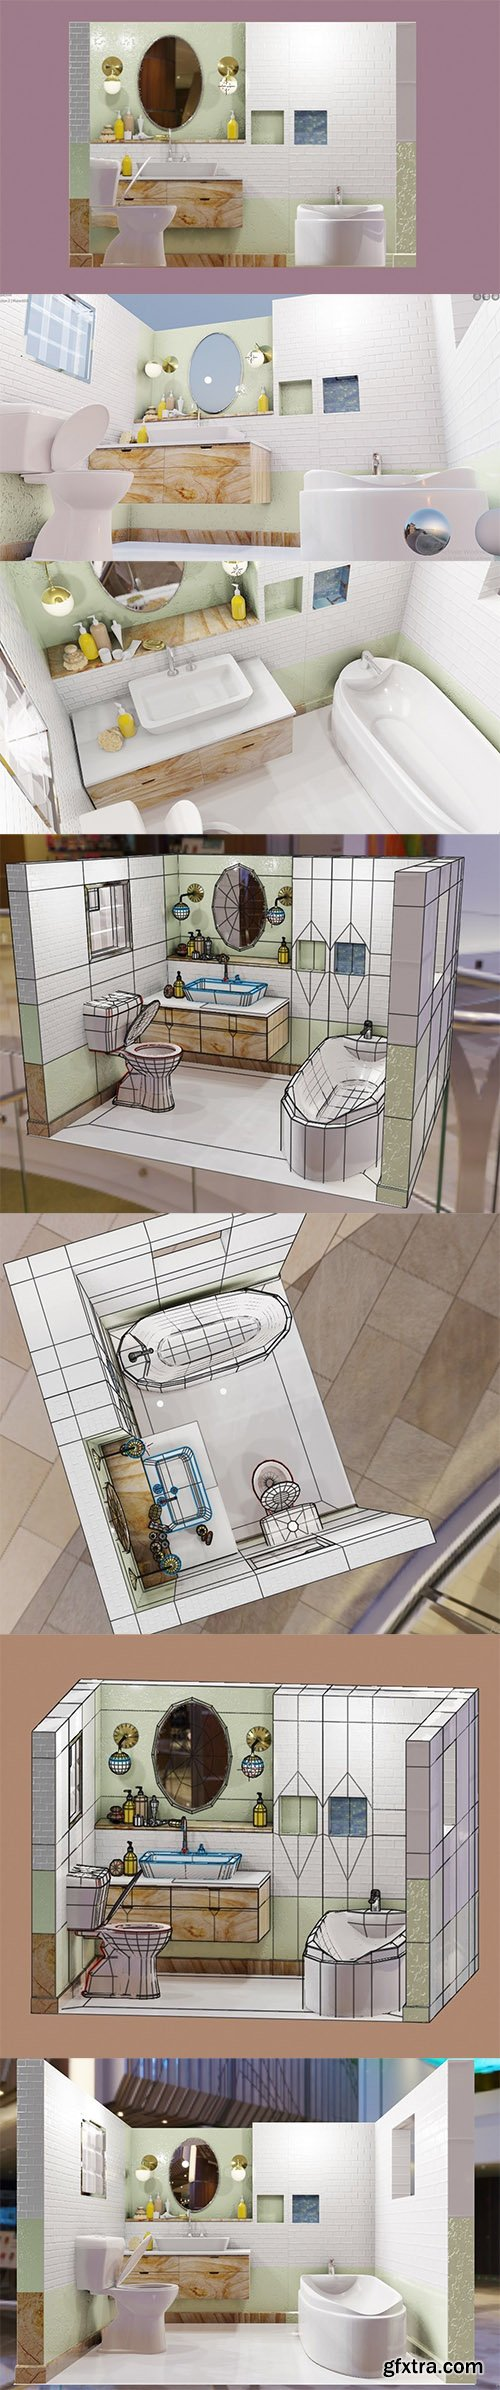 Cgtrader - bathroom scene packed with models